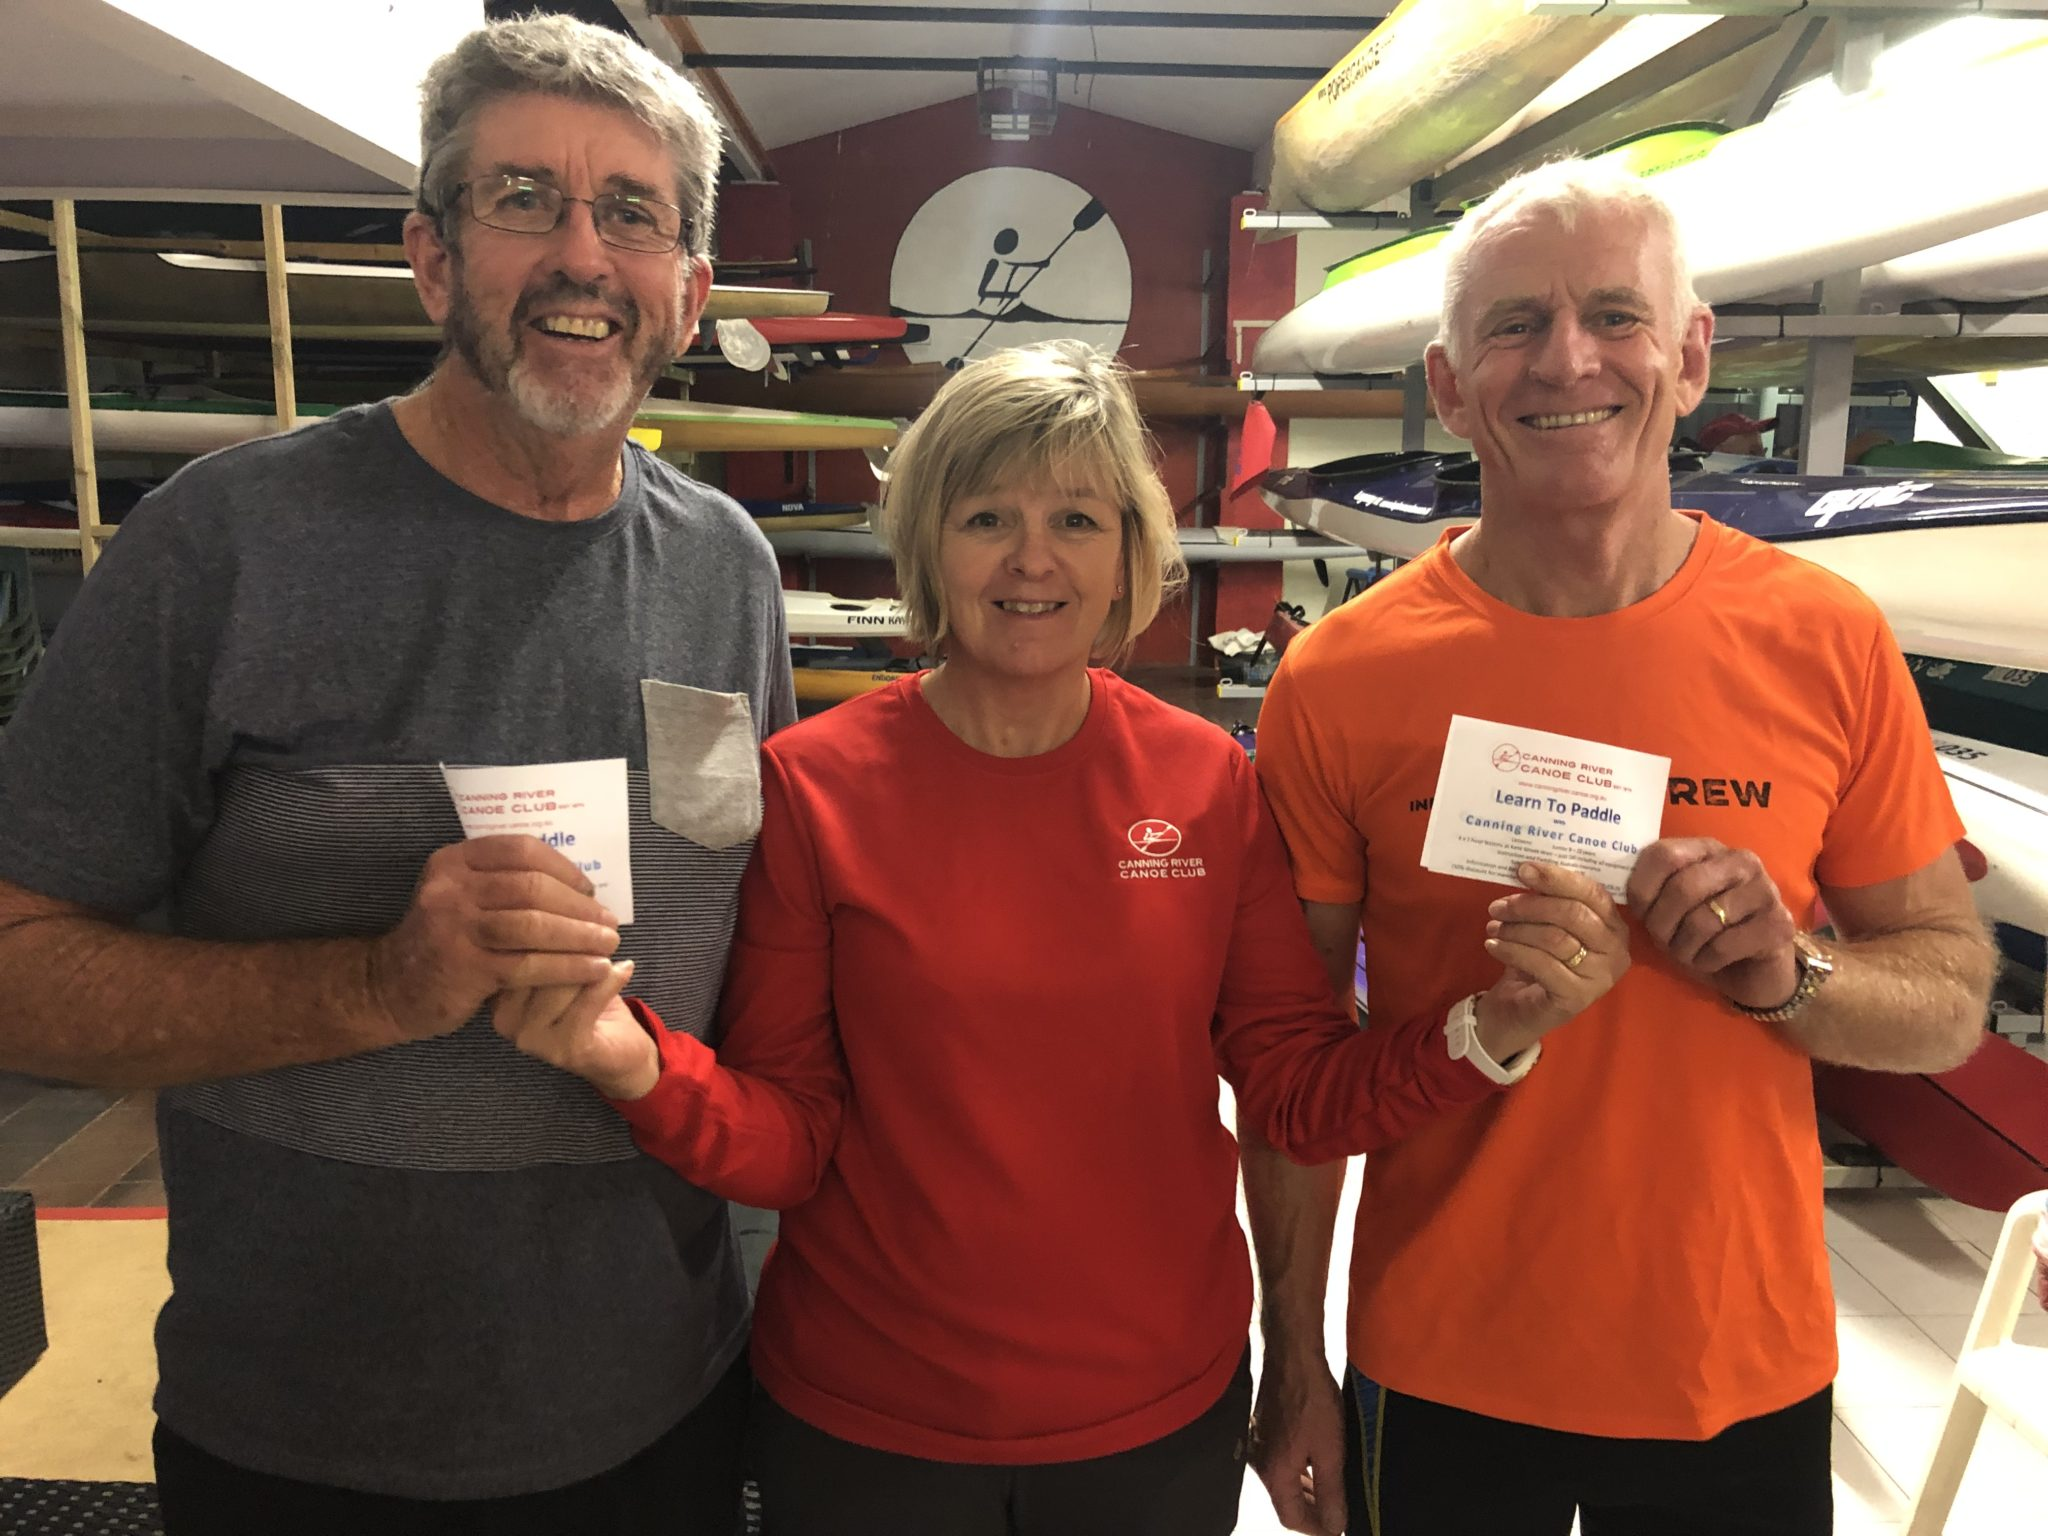 Tuesday 29th January 2019 : Tonight's photo shows club Secretary Judith Thompson presenting David Griffiths and Ken Ringrose with the winners movie vouchers.